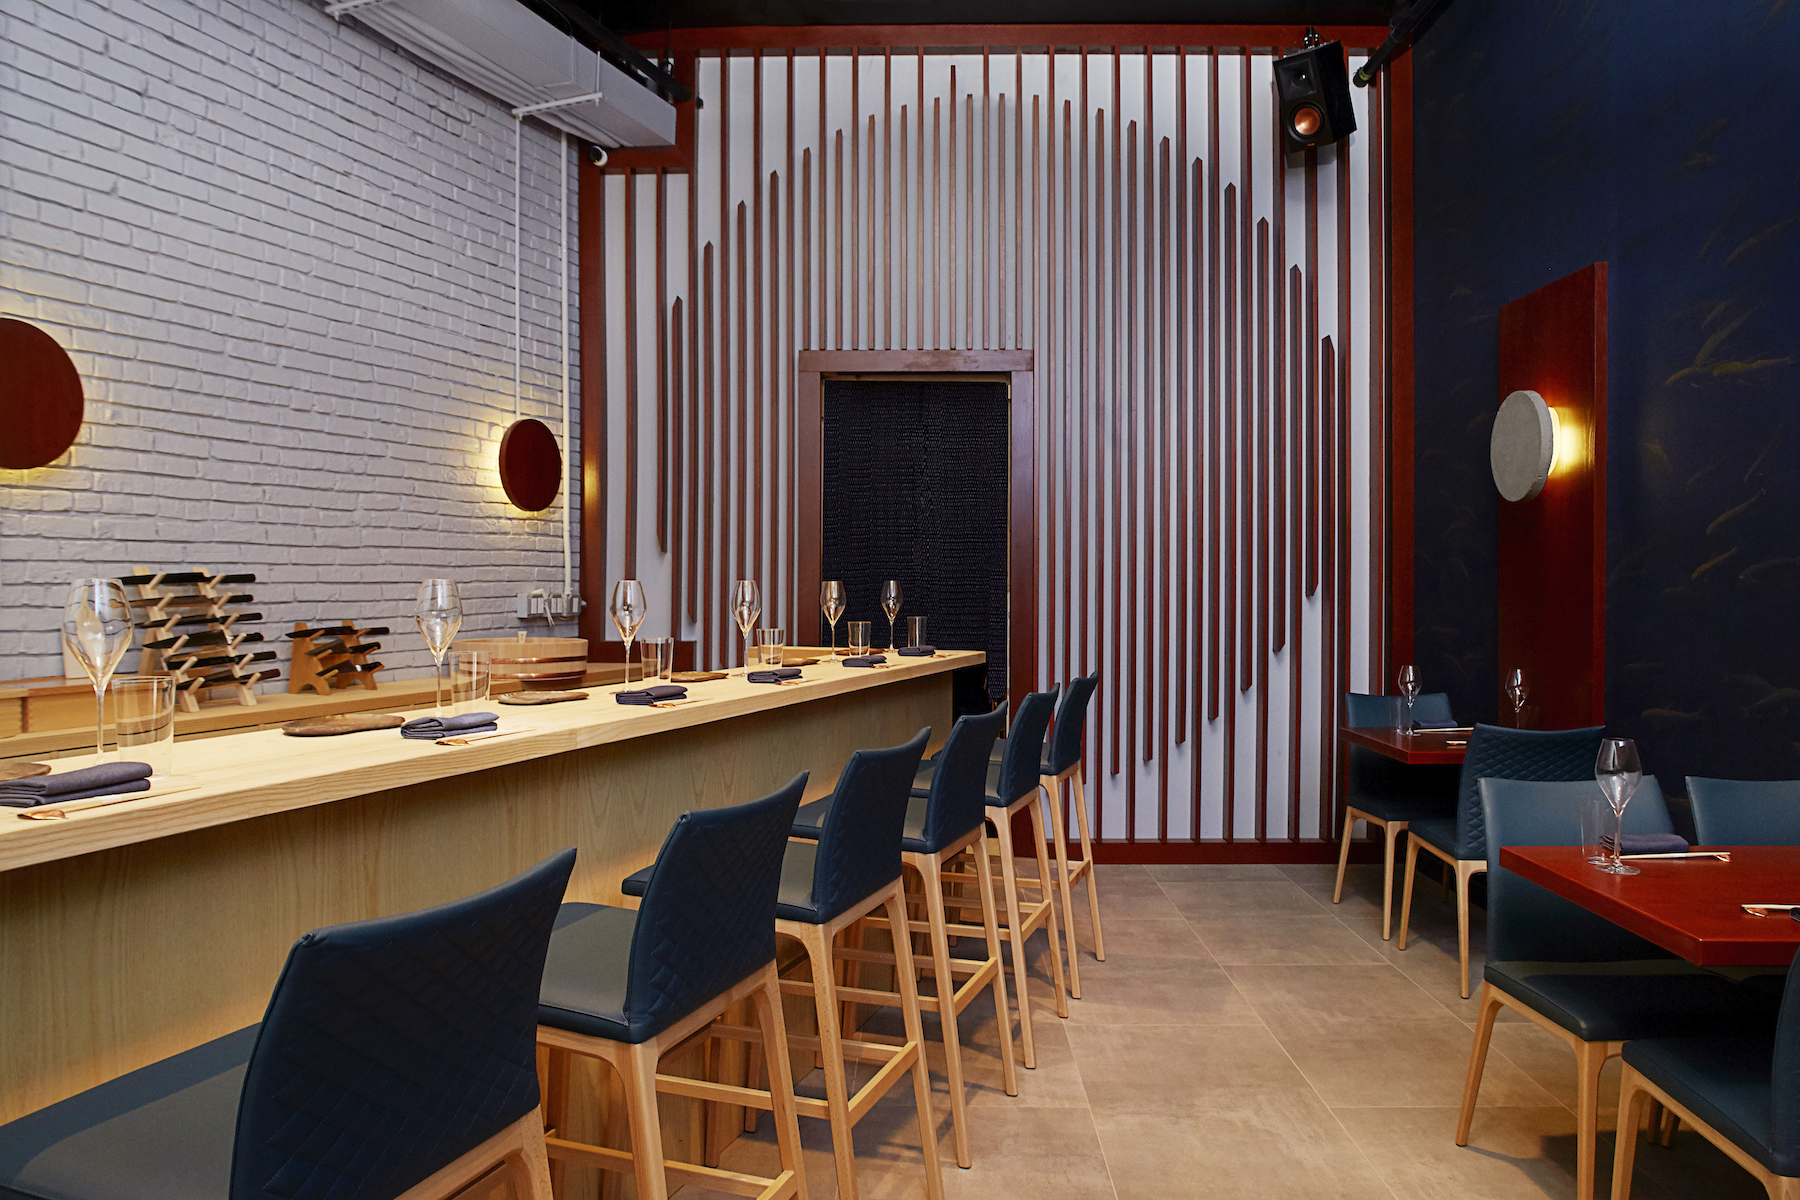 Inside a restaurant with white and red striped walls, tall green chairs propped up against a wooden counter and on the opposite side some more green chairs against red tables